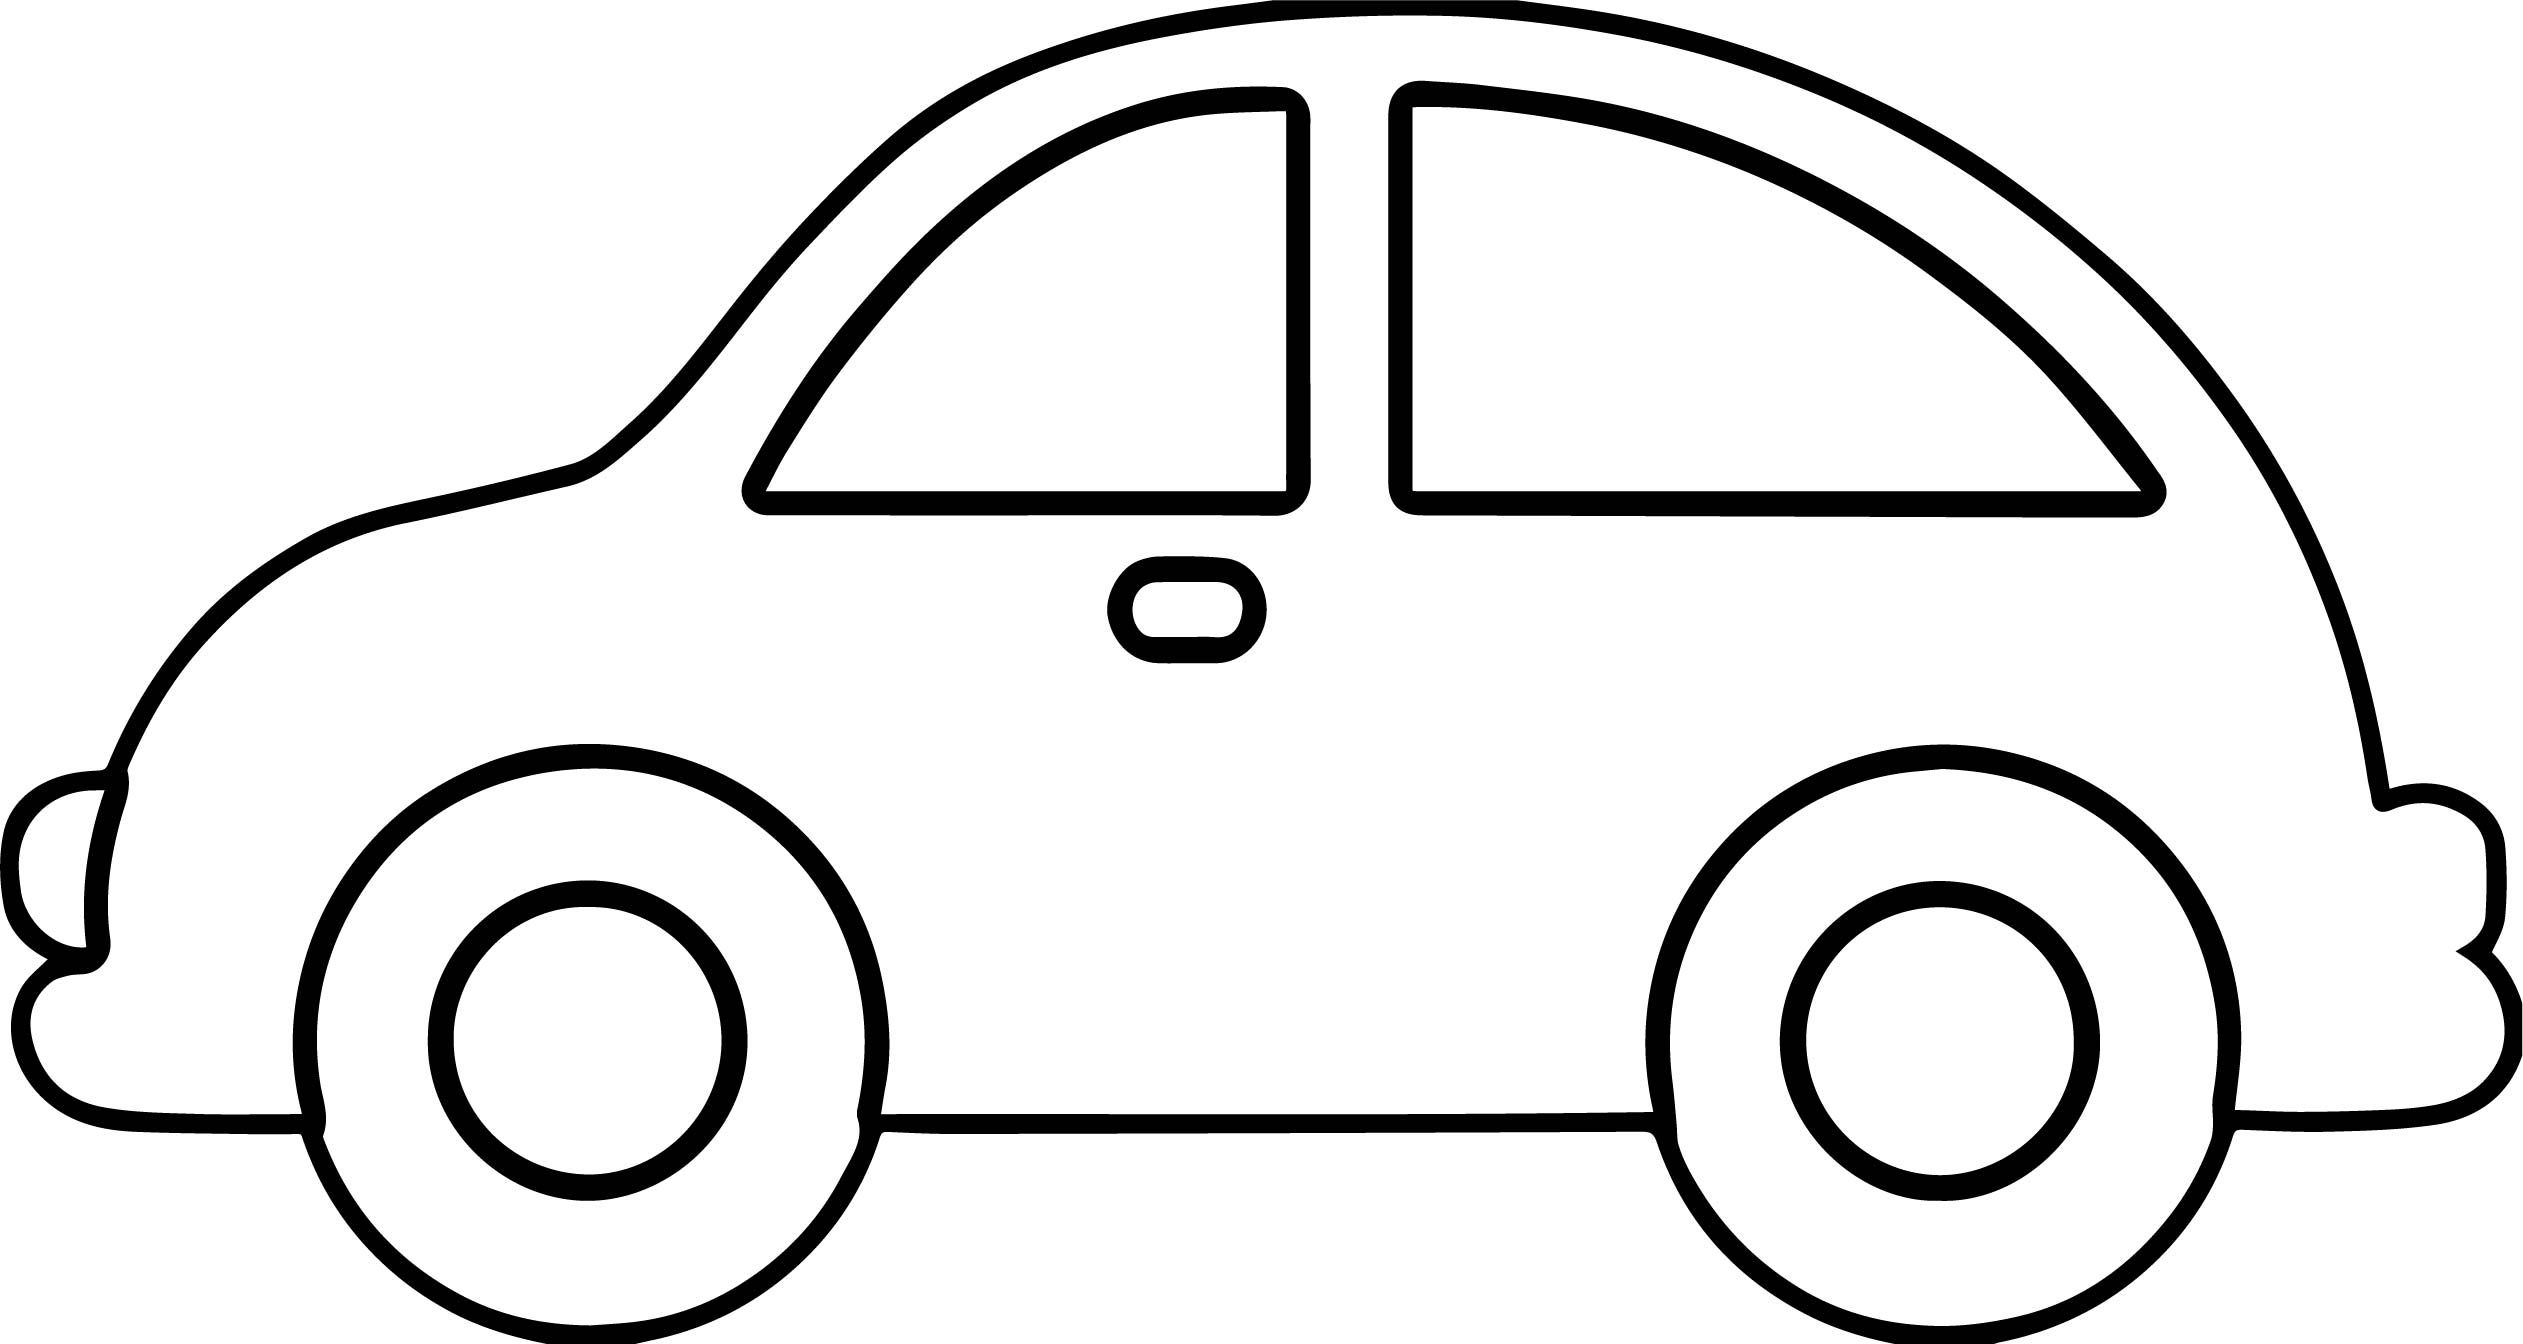 Car drawing free download. Clipart cars outline